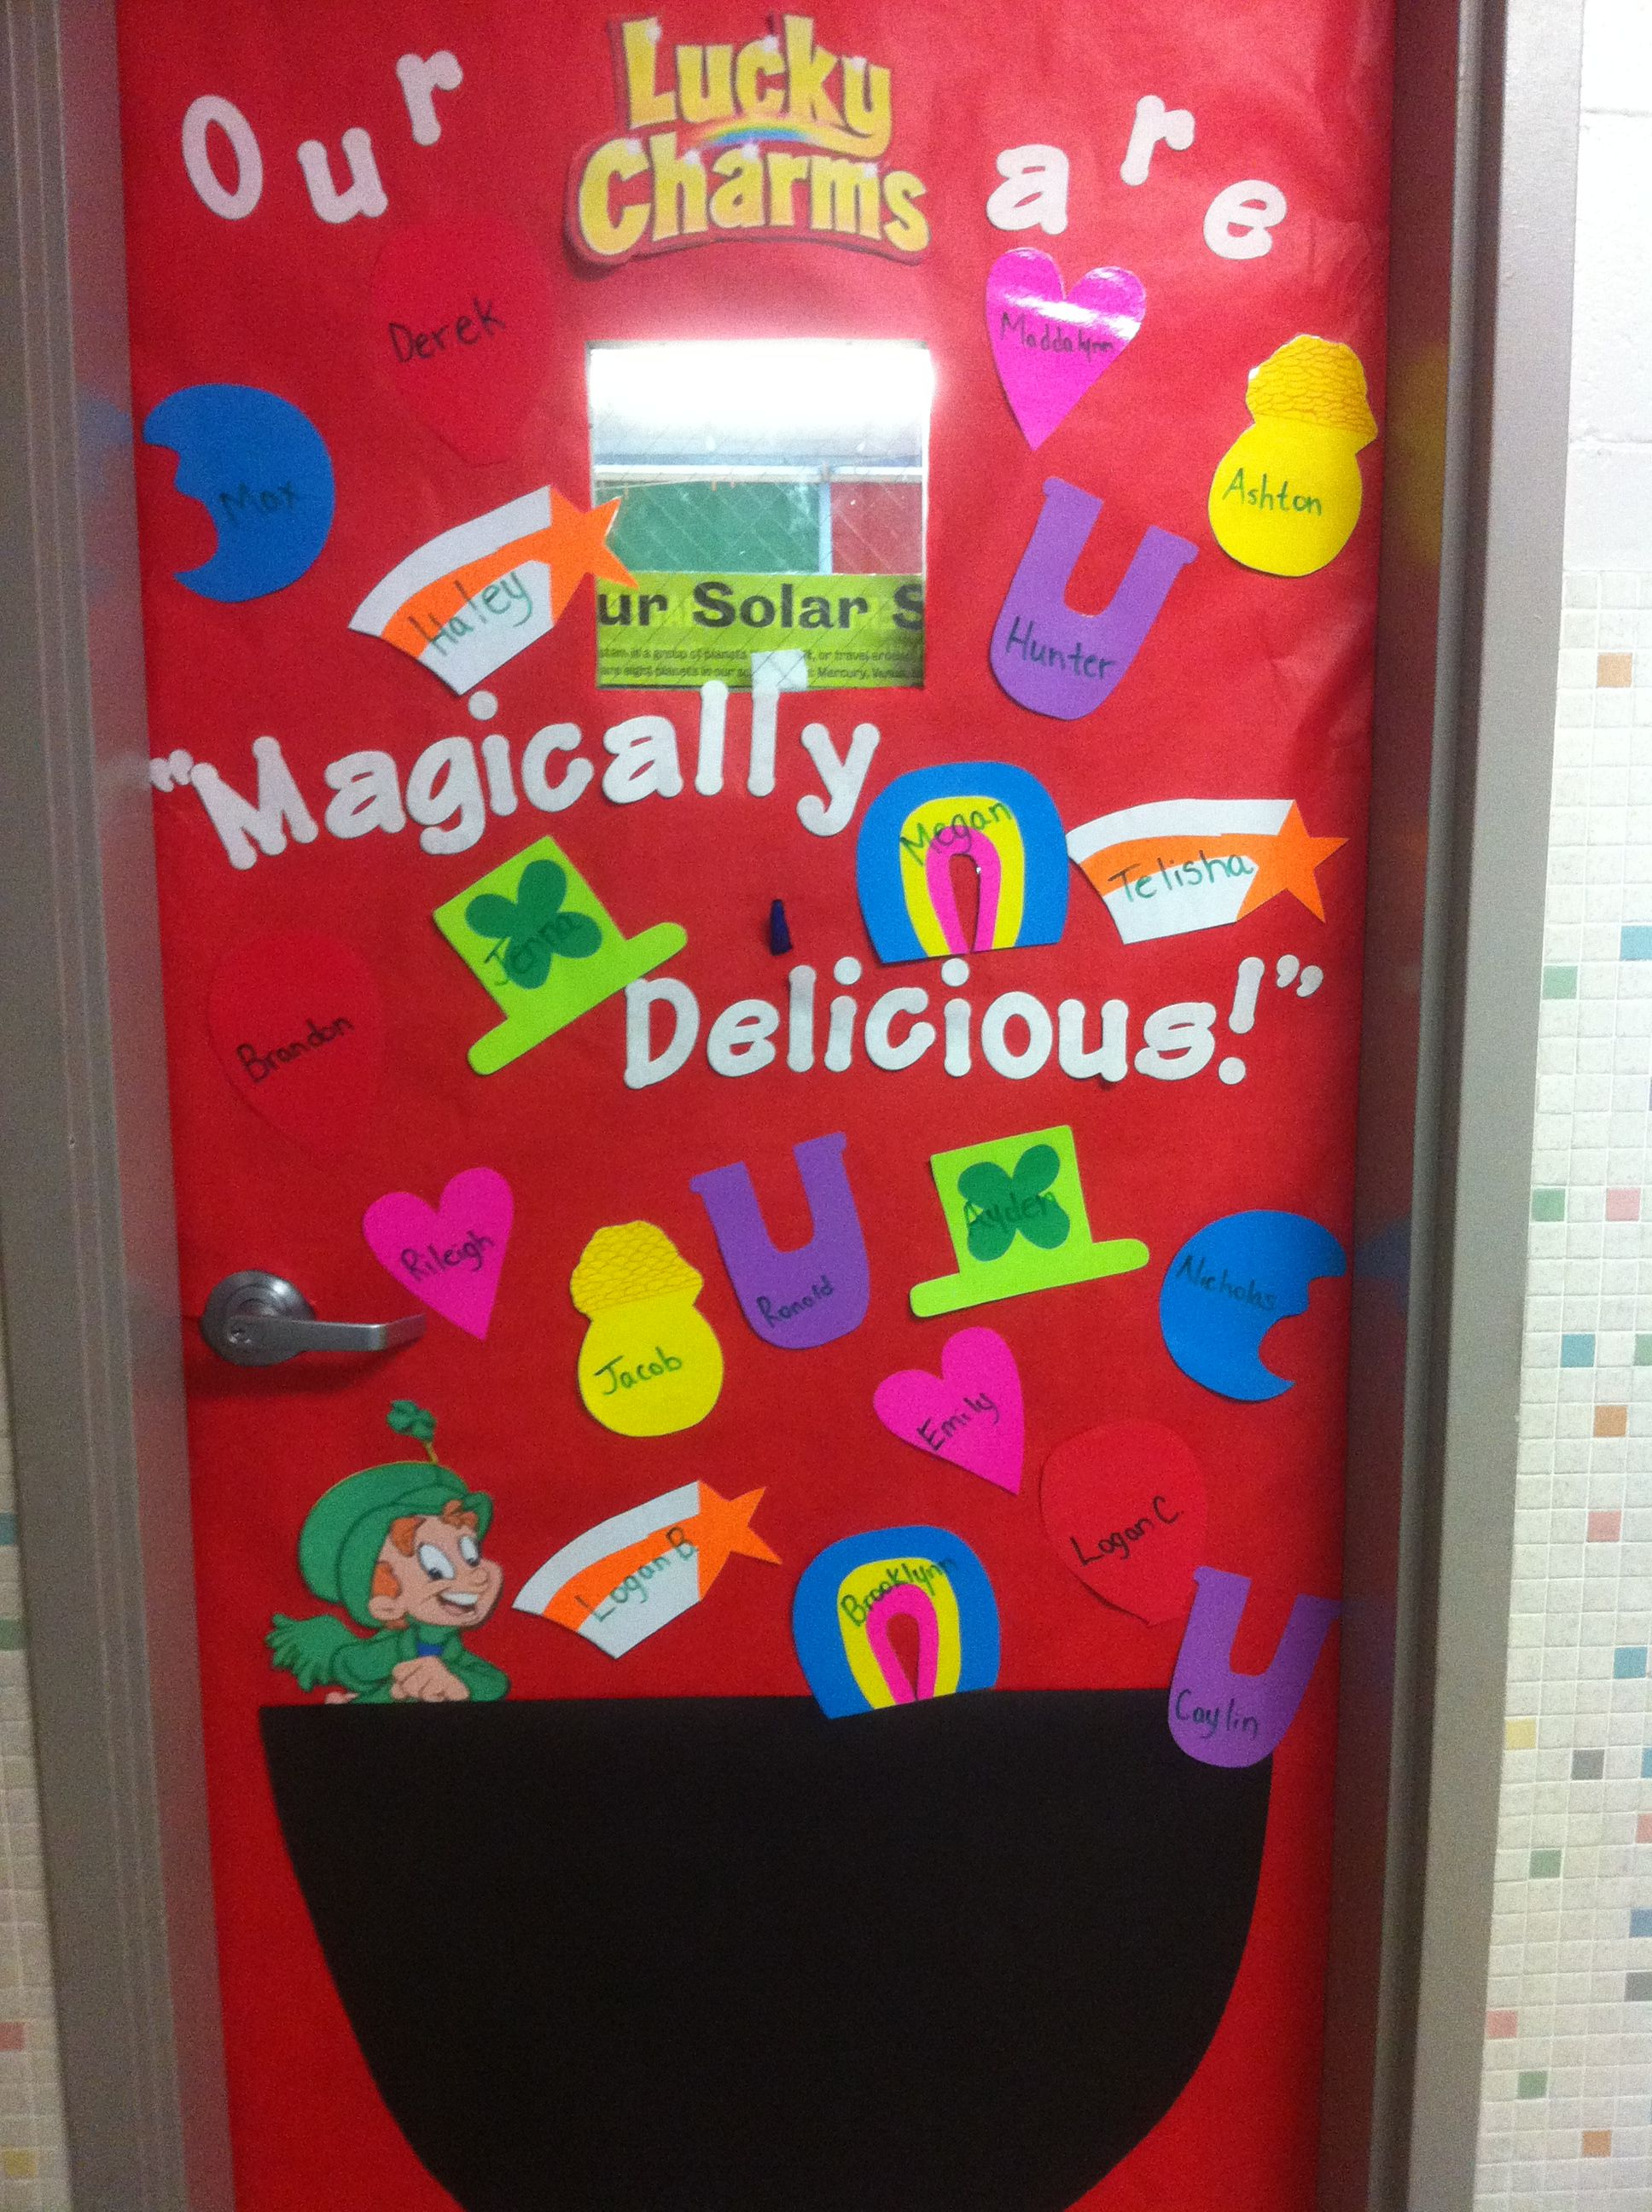 This Is The Door Decorated For Saint Patrick S Day The Students